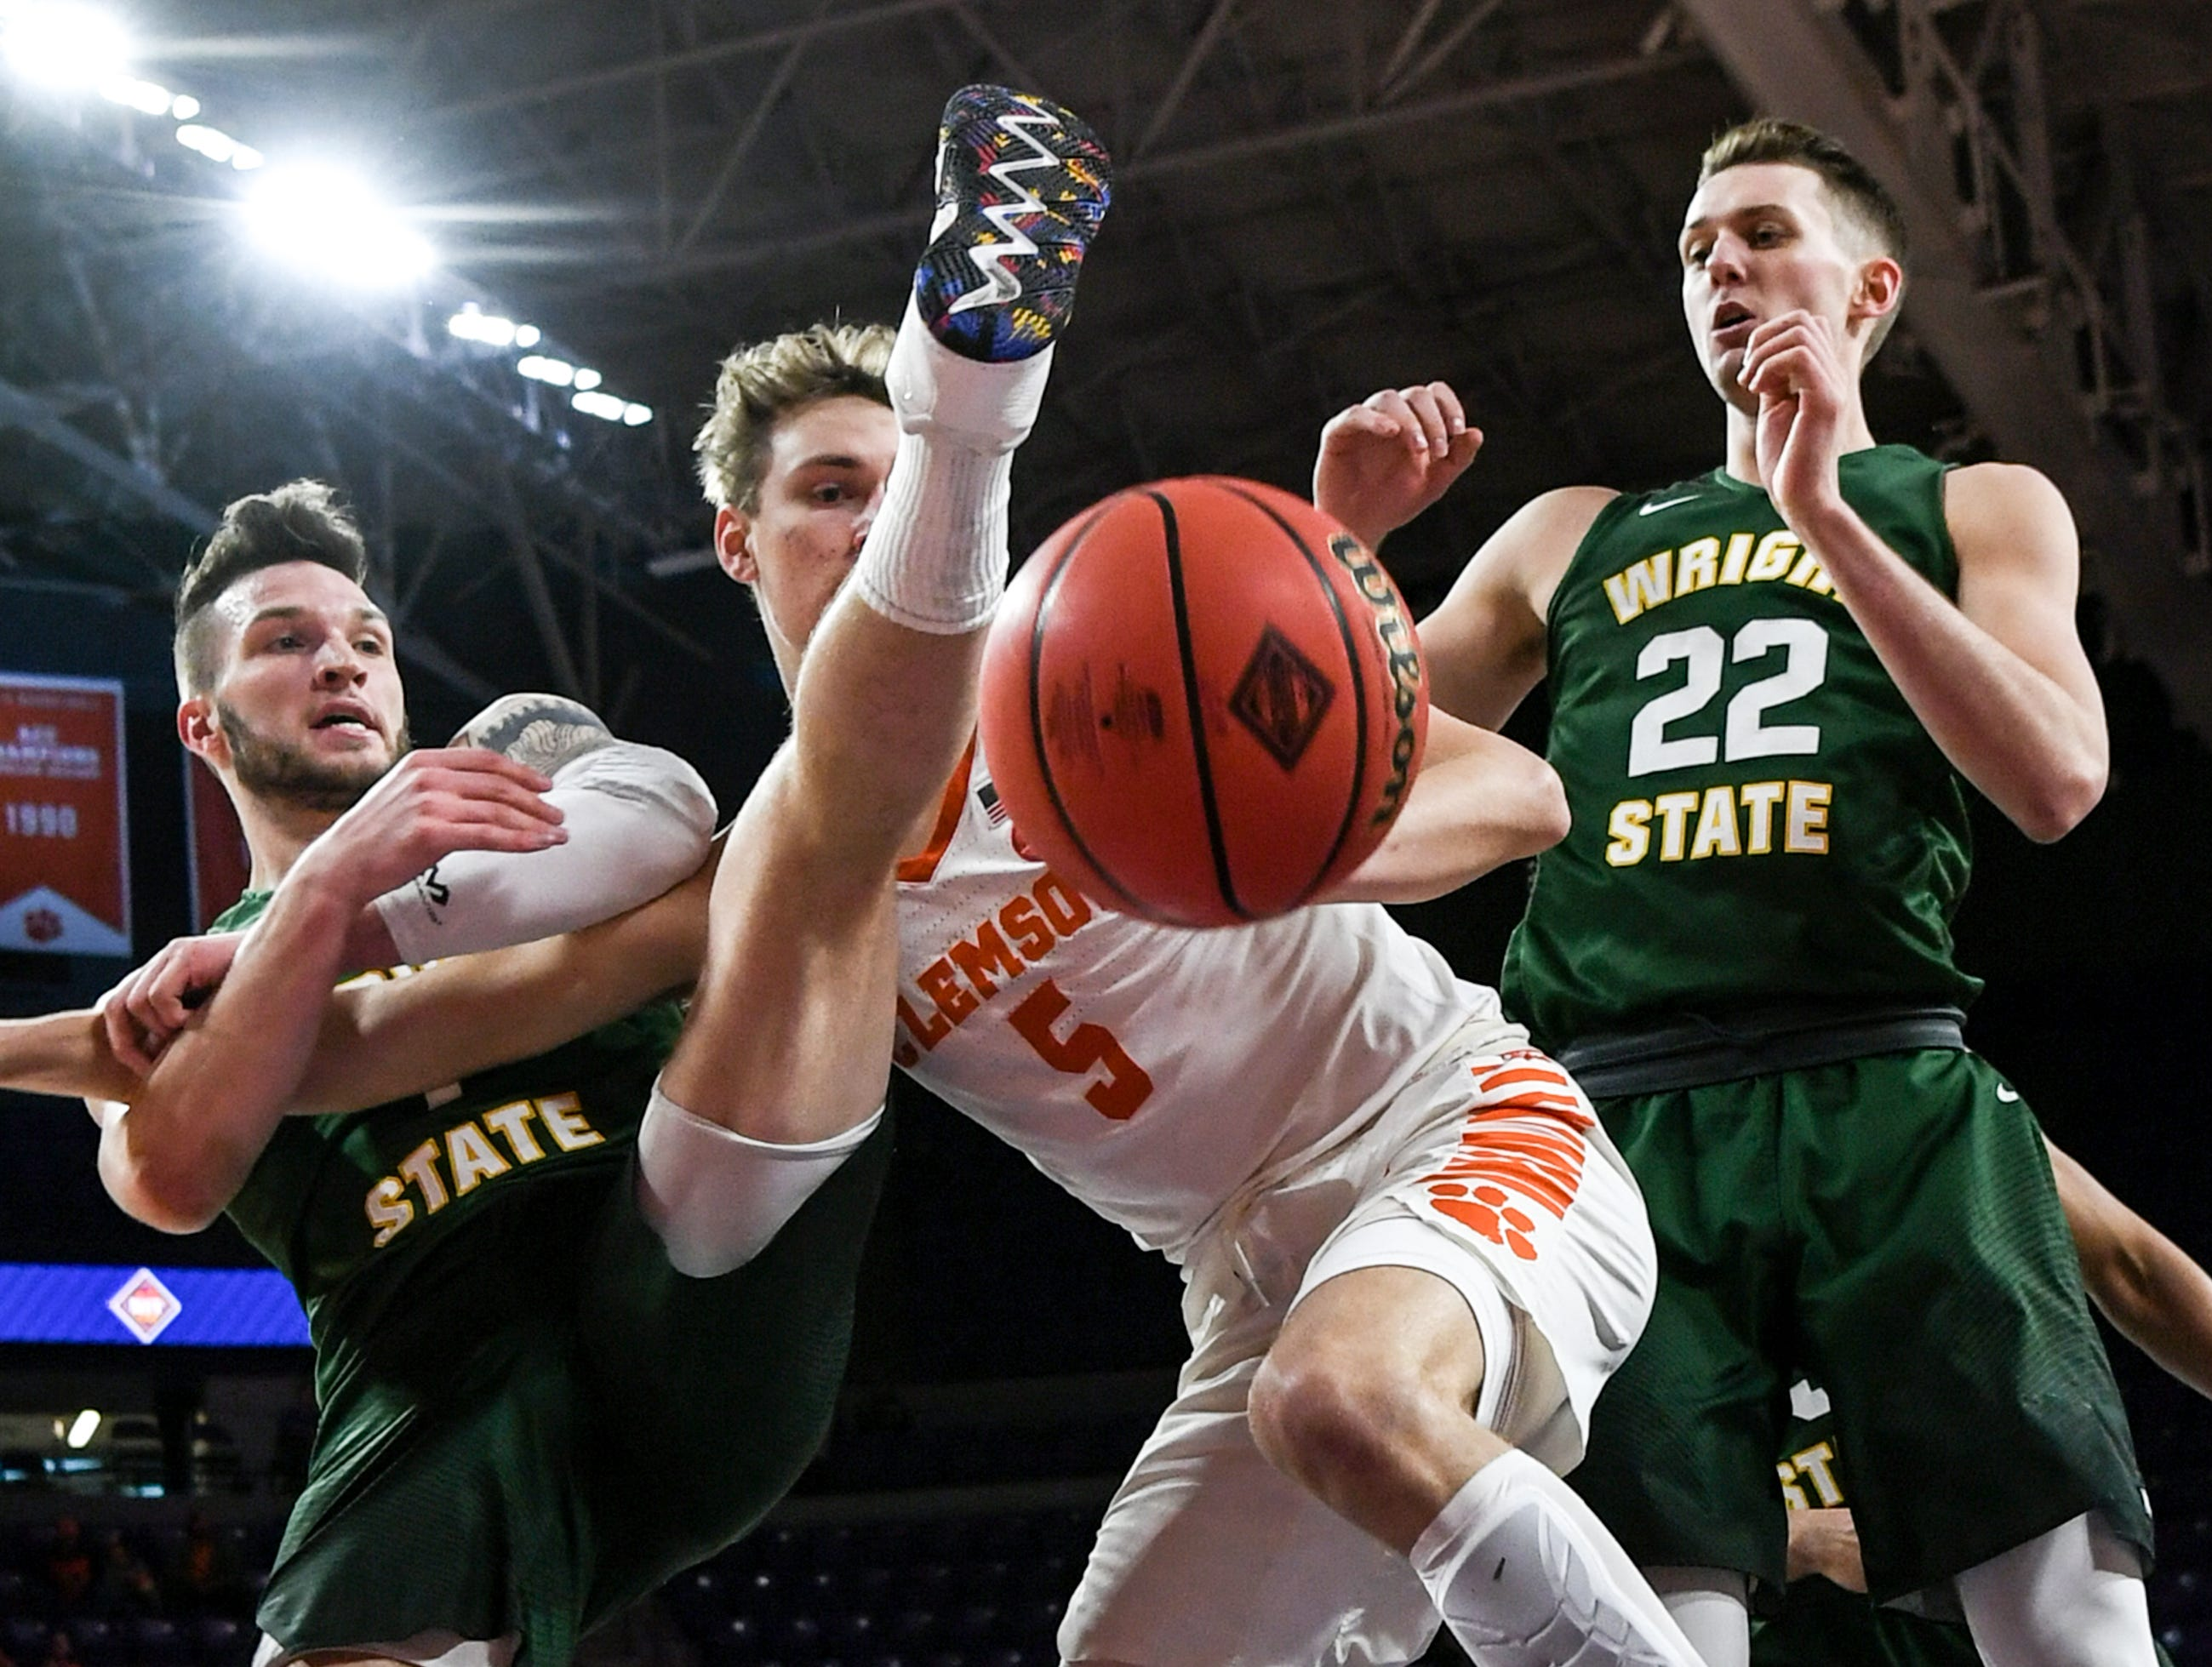 Clemson forward Hunter Tyson(5), middle, watches a loose ball with Wright State forward Bill Wampler(1), left, and Wright State center Parker Ernsthausen(22), right, during the first half of the NIT at Littlejohn Coliseum in Clemson Tuesday, March 19, 2019.